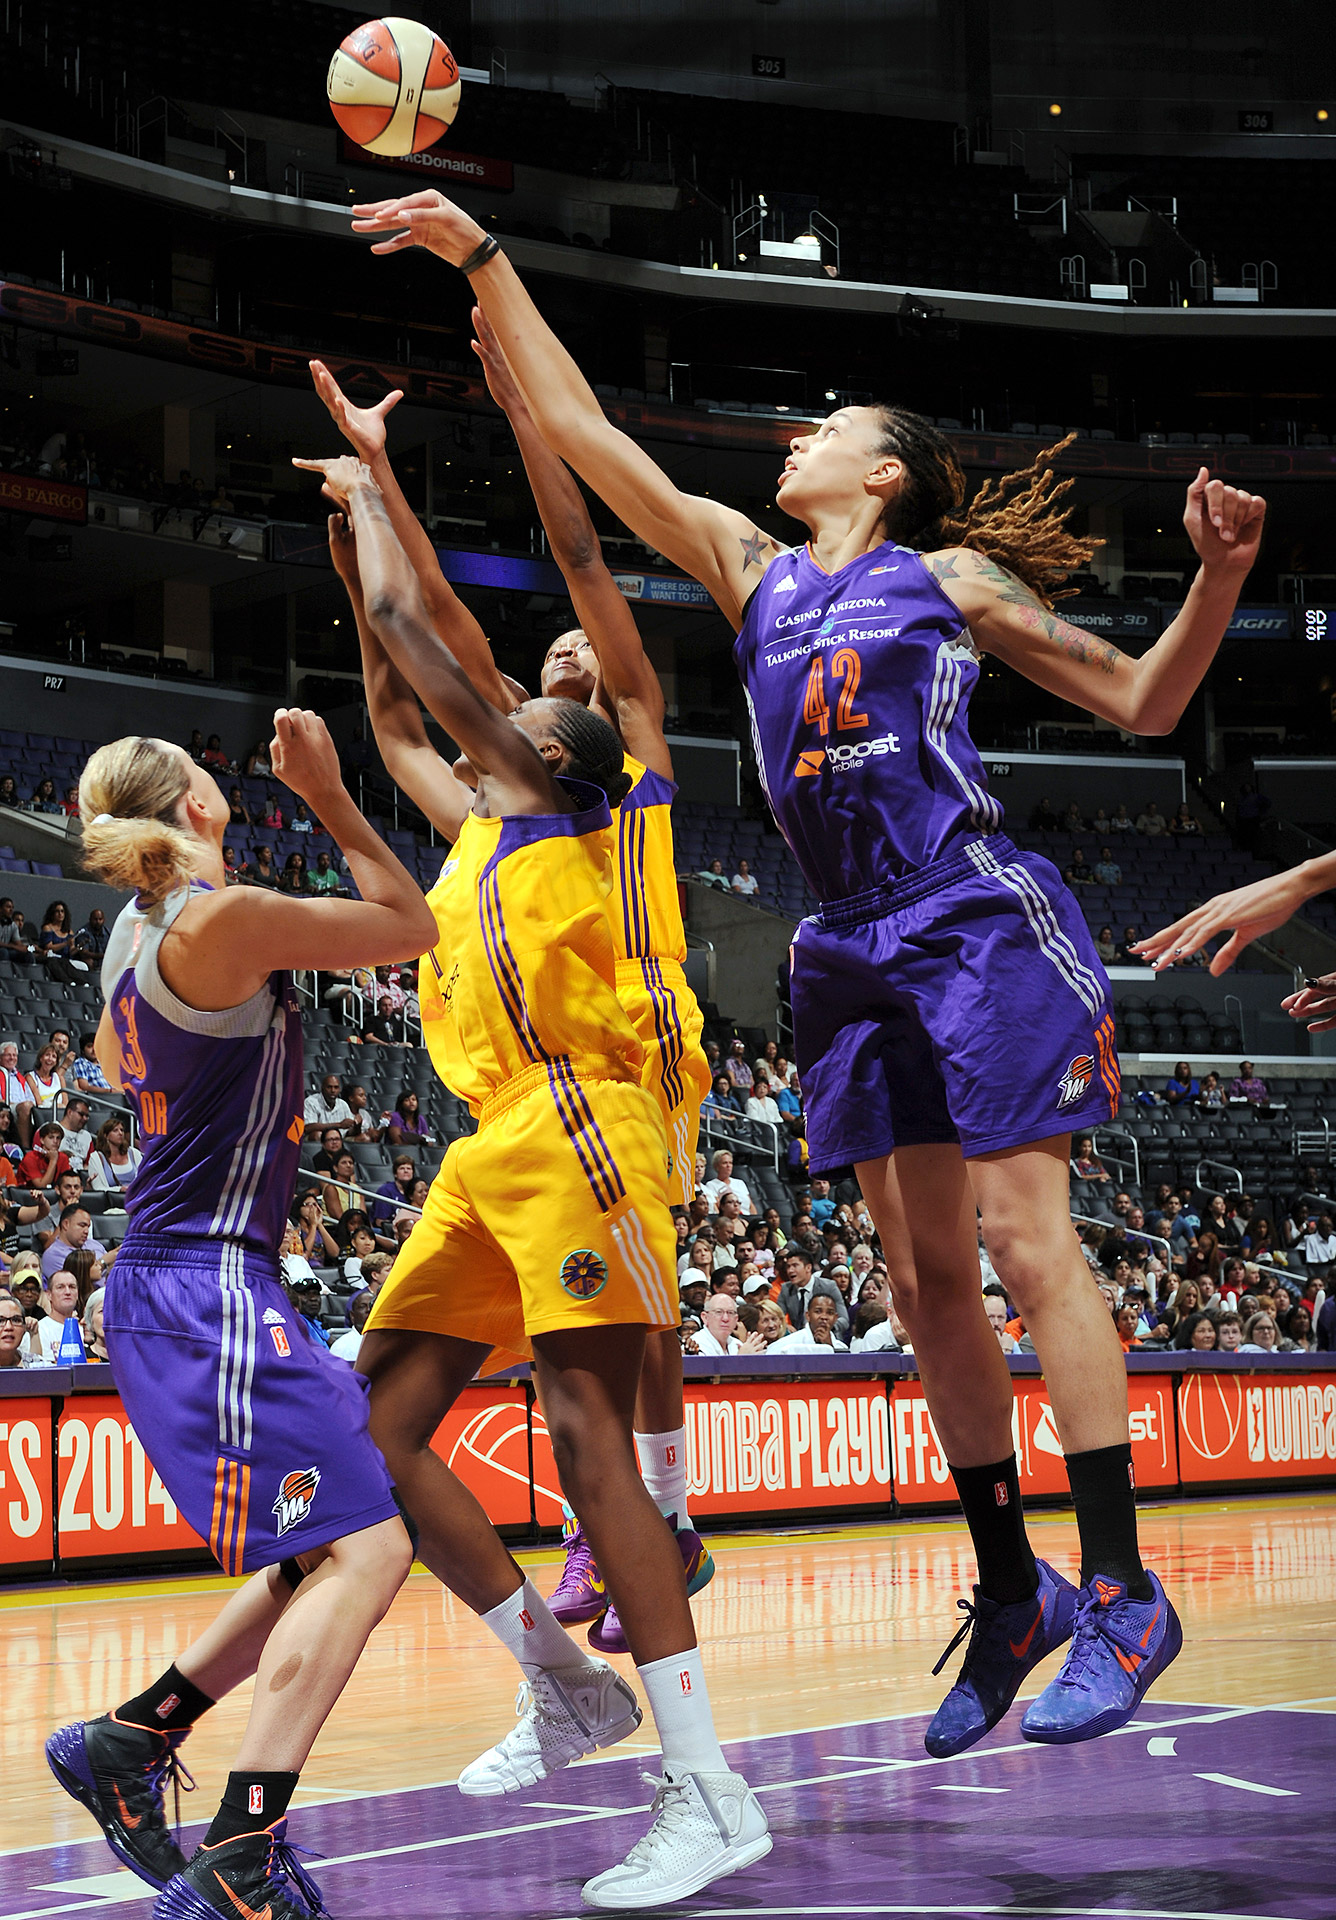 Brittney Griner scored 21 points -- including a rousing breakaway dunk -- as Phoenix completed a sweep over the Los Angeles Sparks in the Western Conference semifinals.